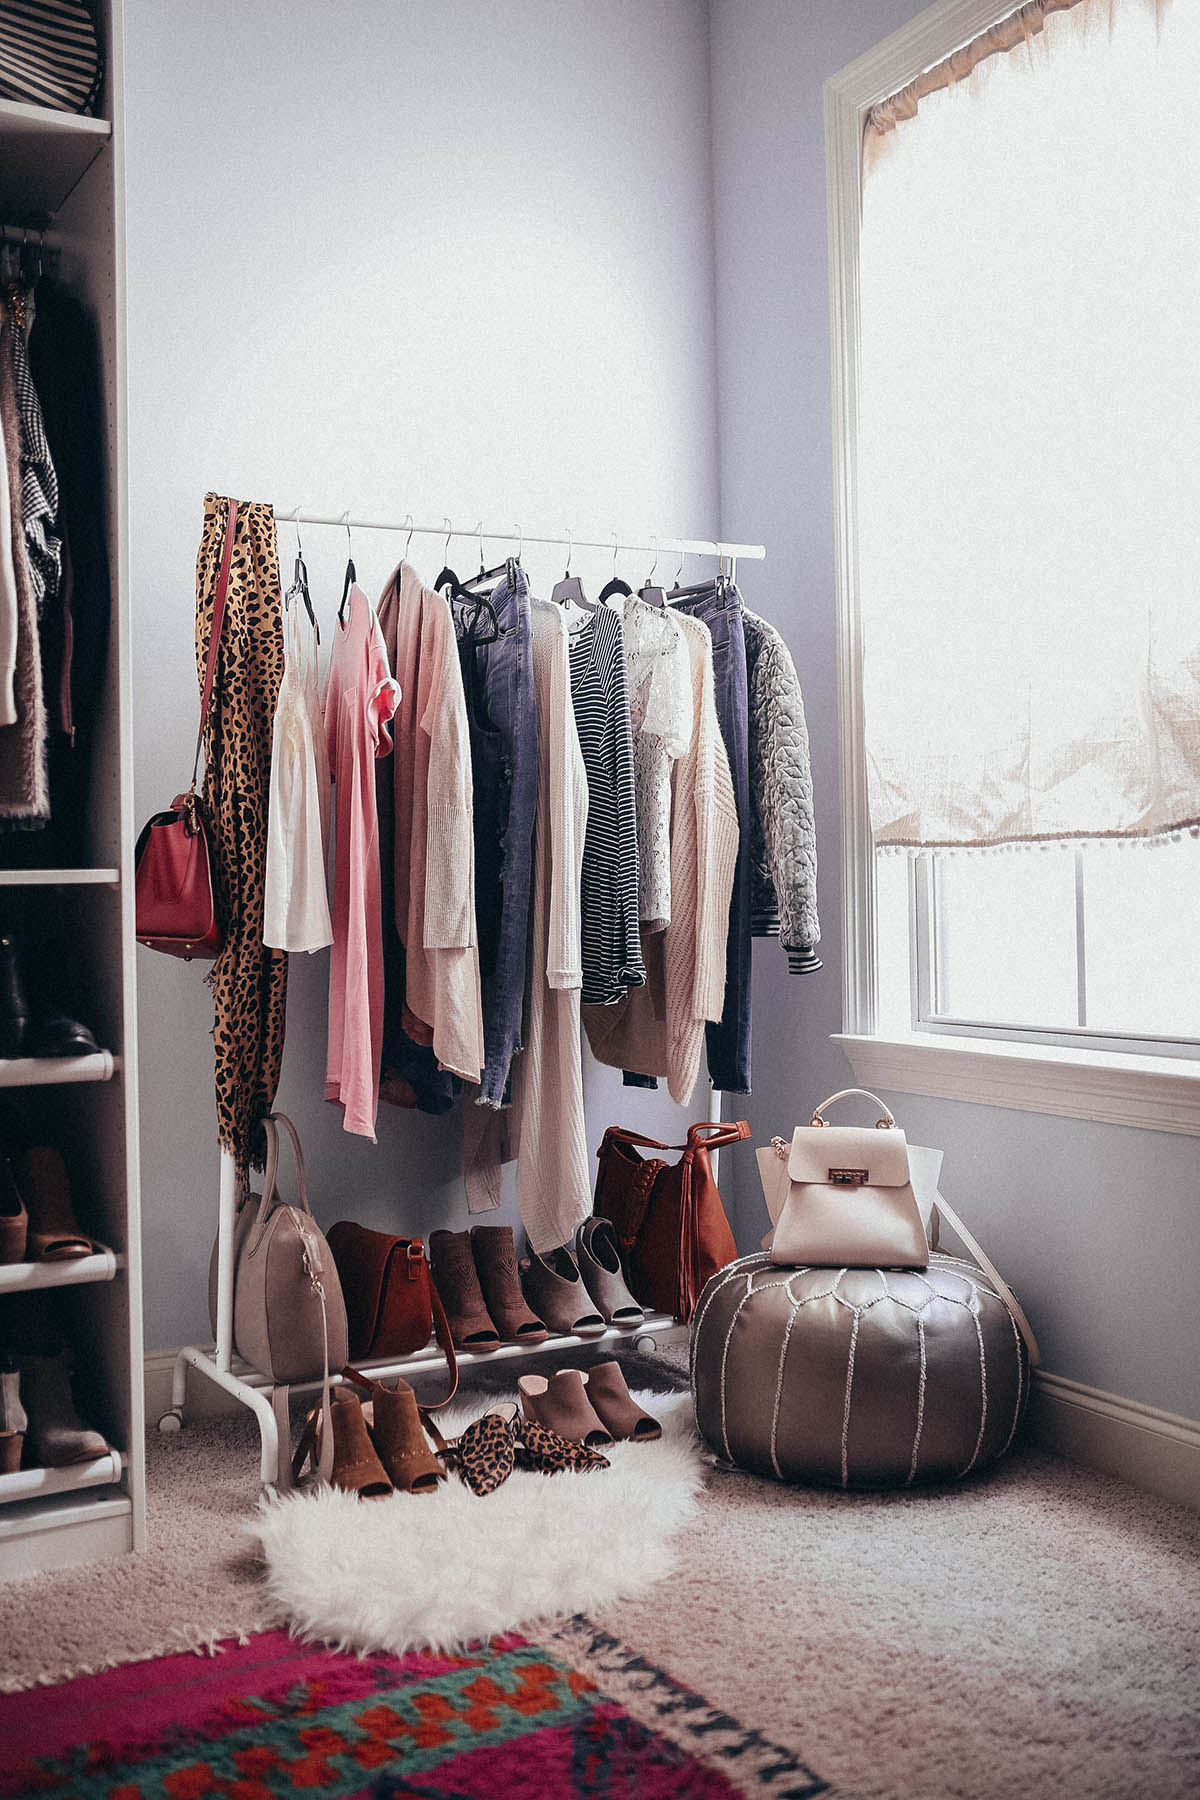 How to Clean Our Your Closet | Closet Organization